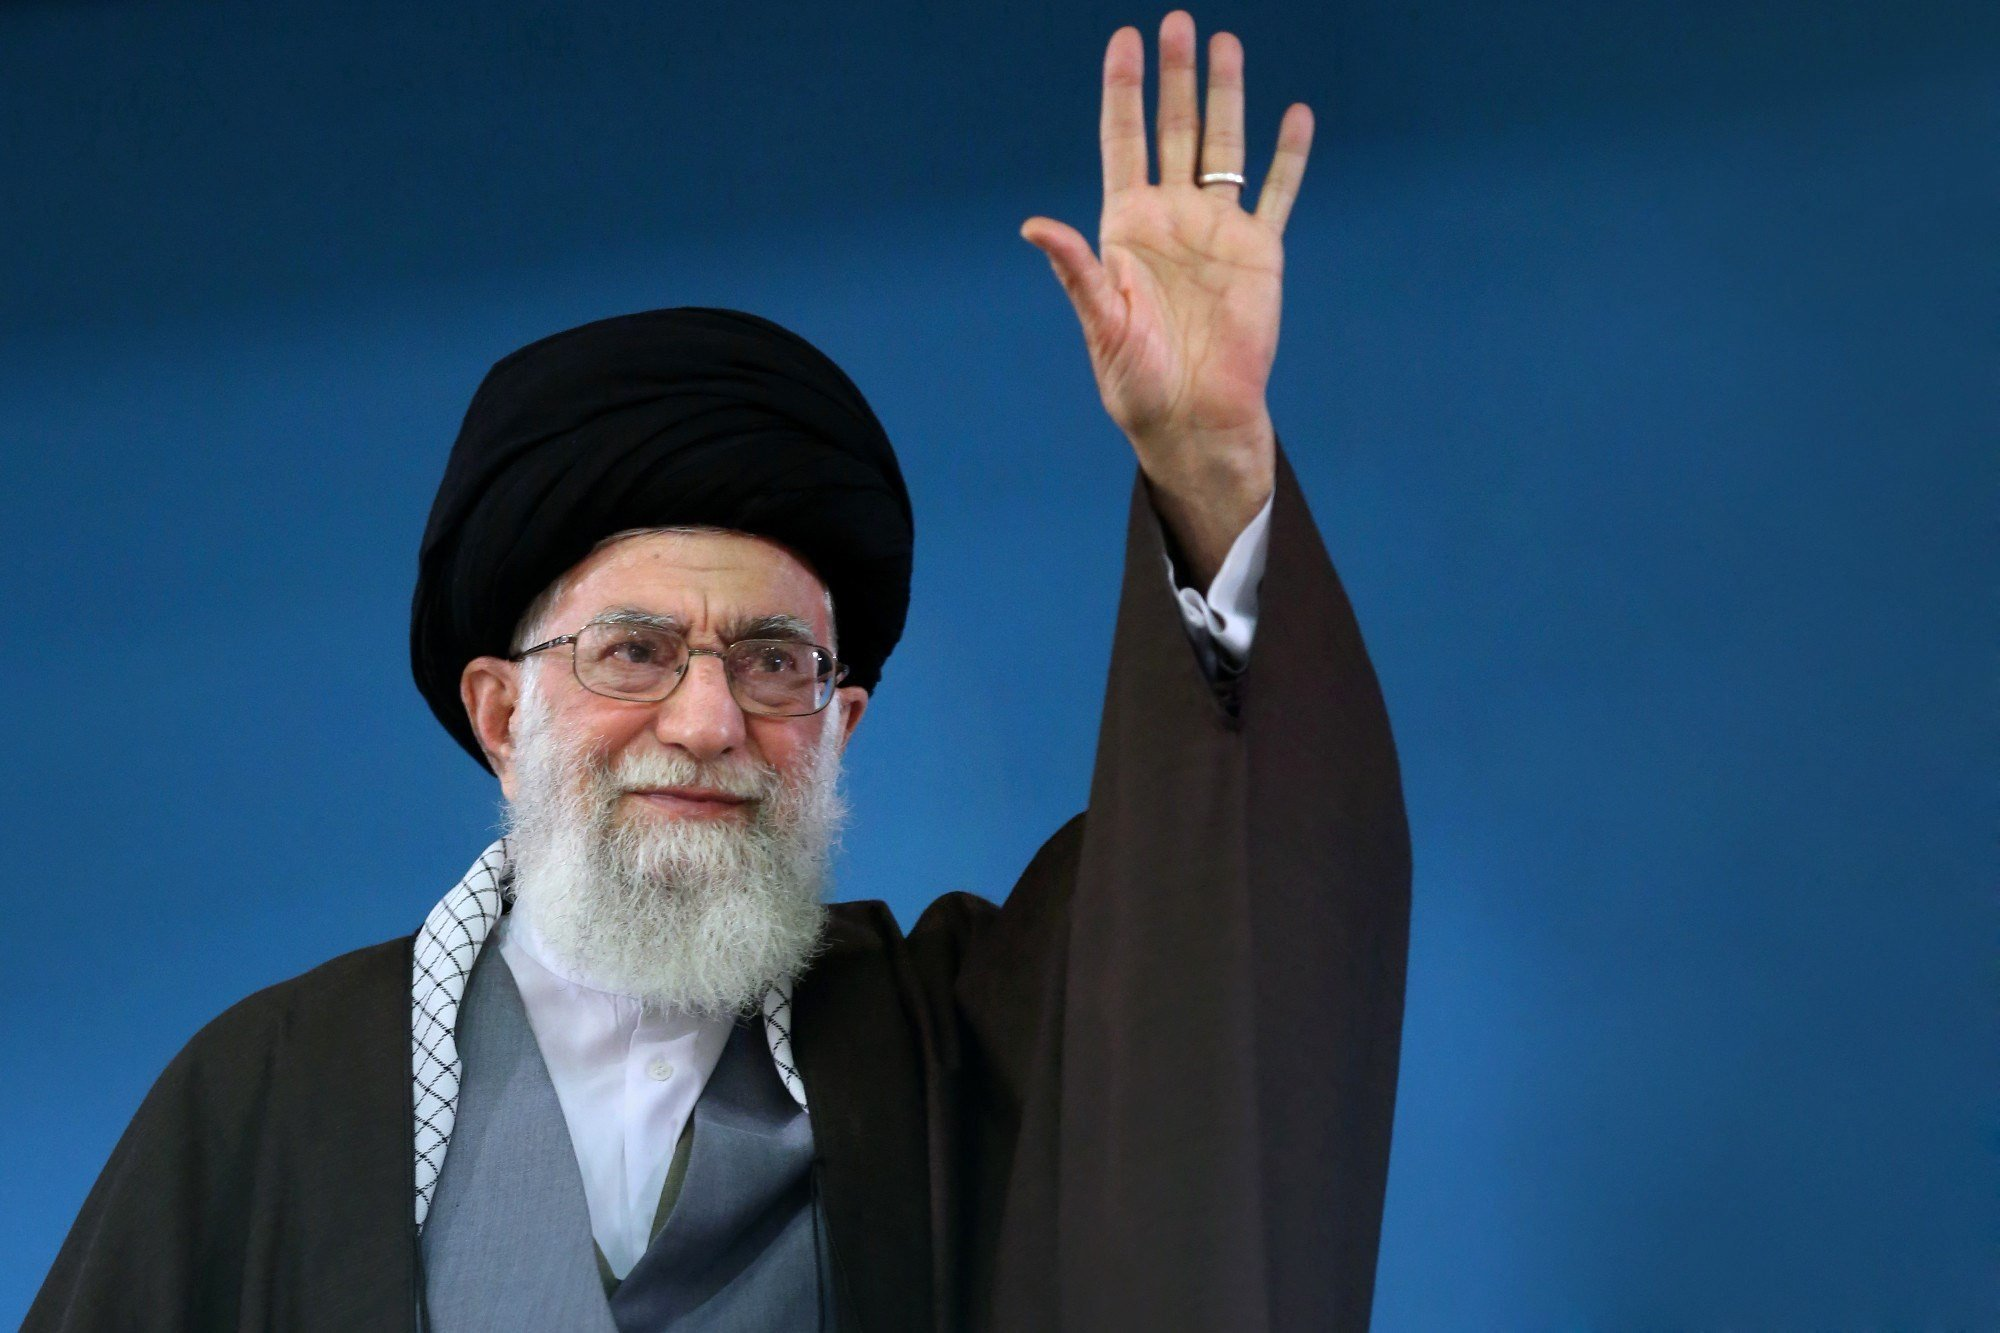 Iran's supreme leader expresses 'pessimism' over nuclear deal